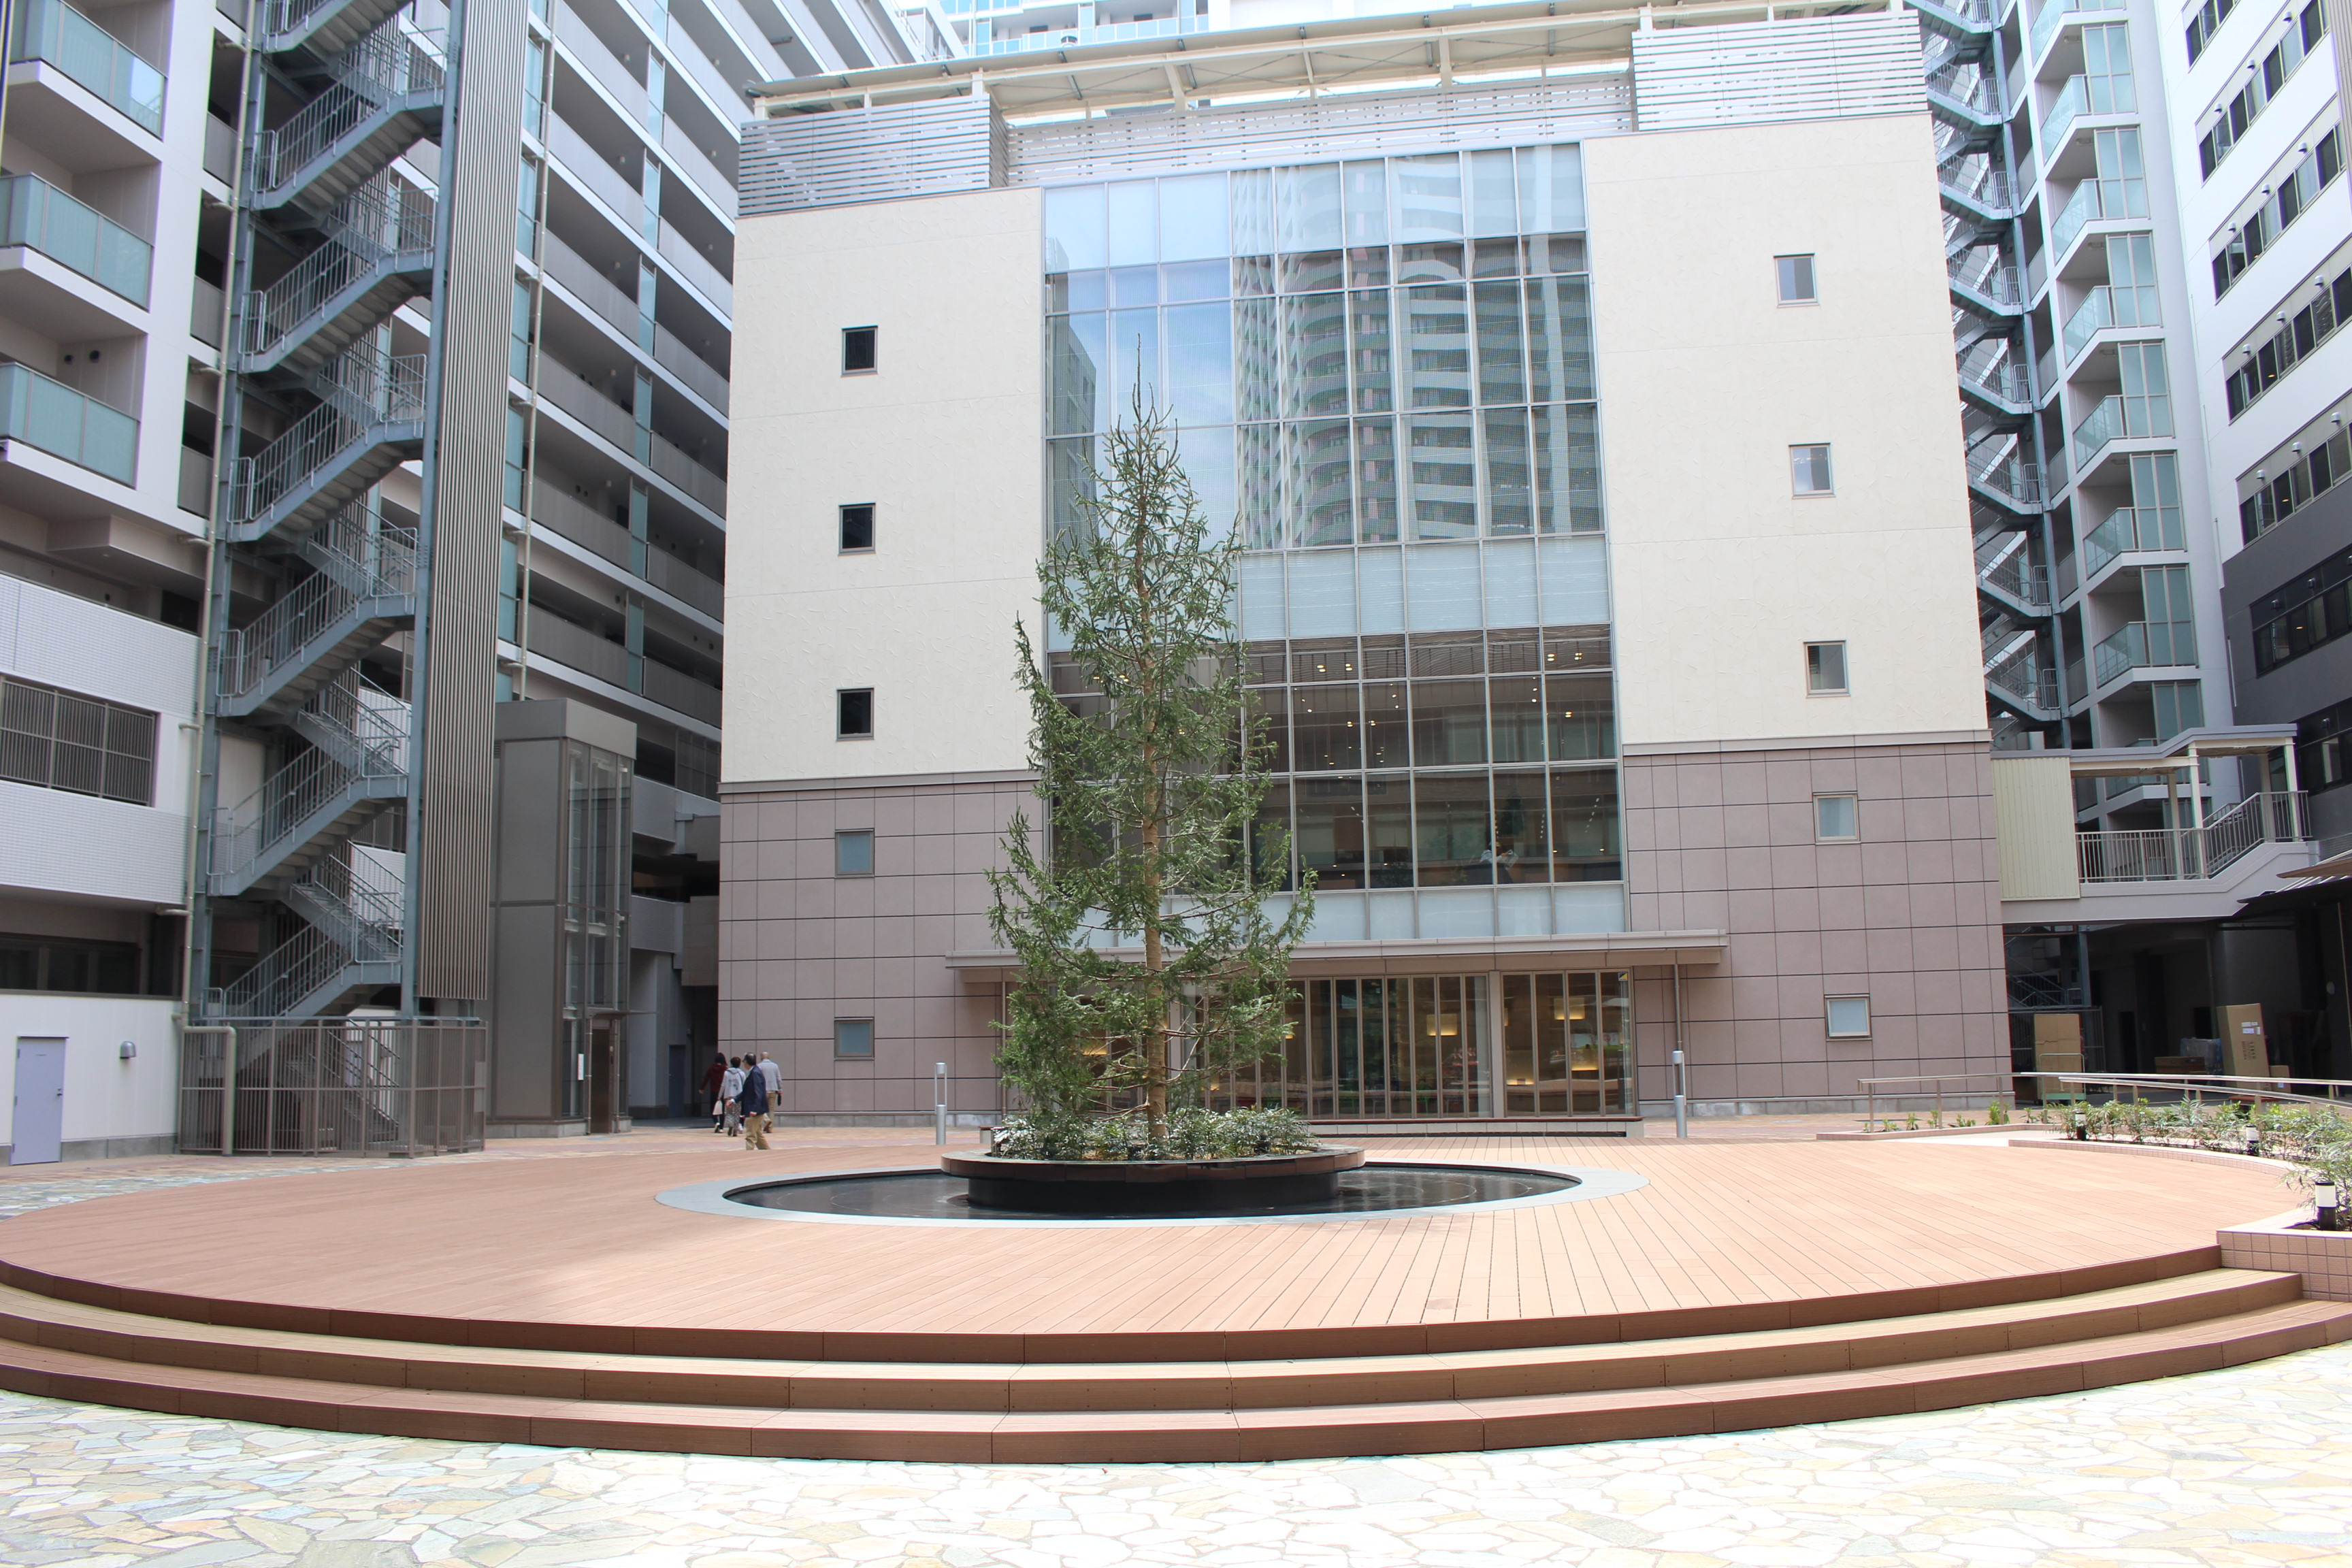 OASIS COURT